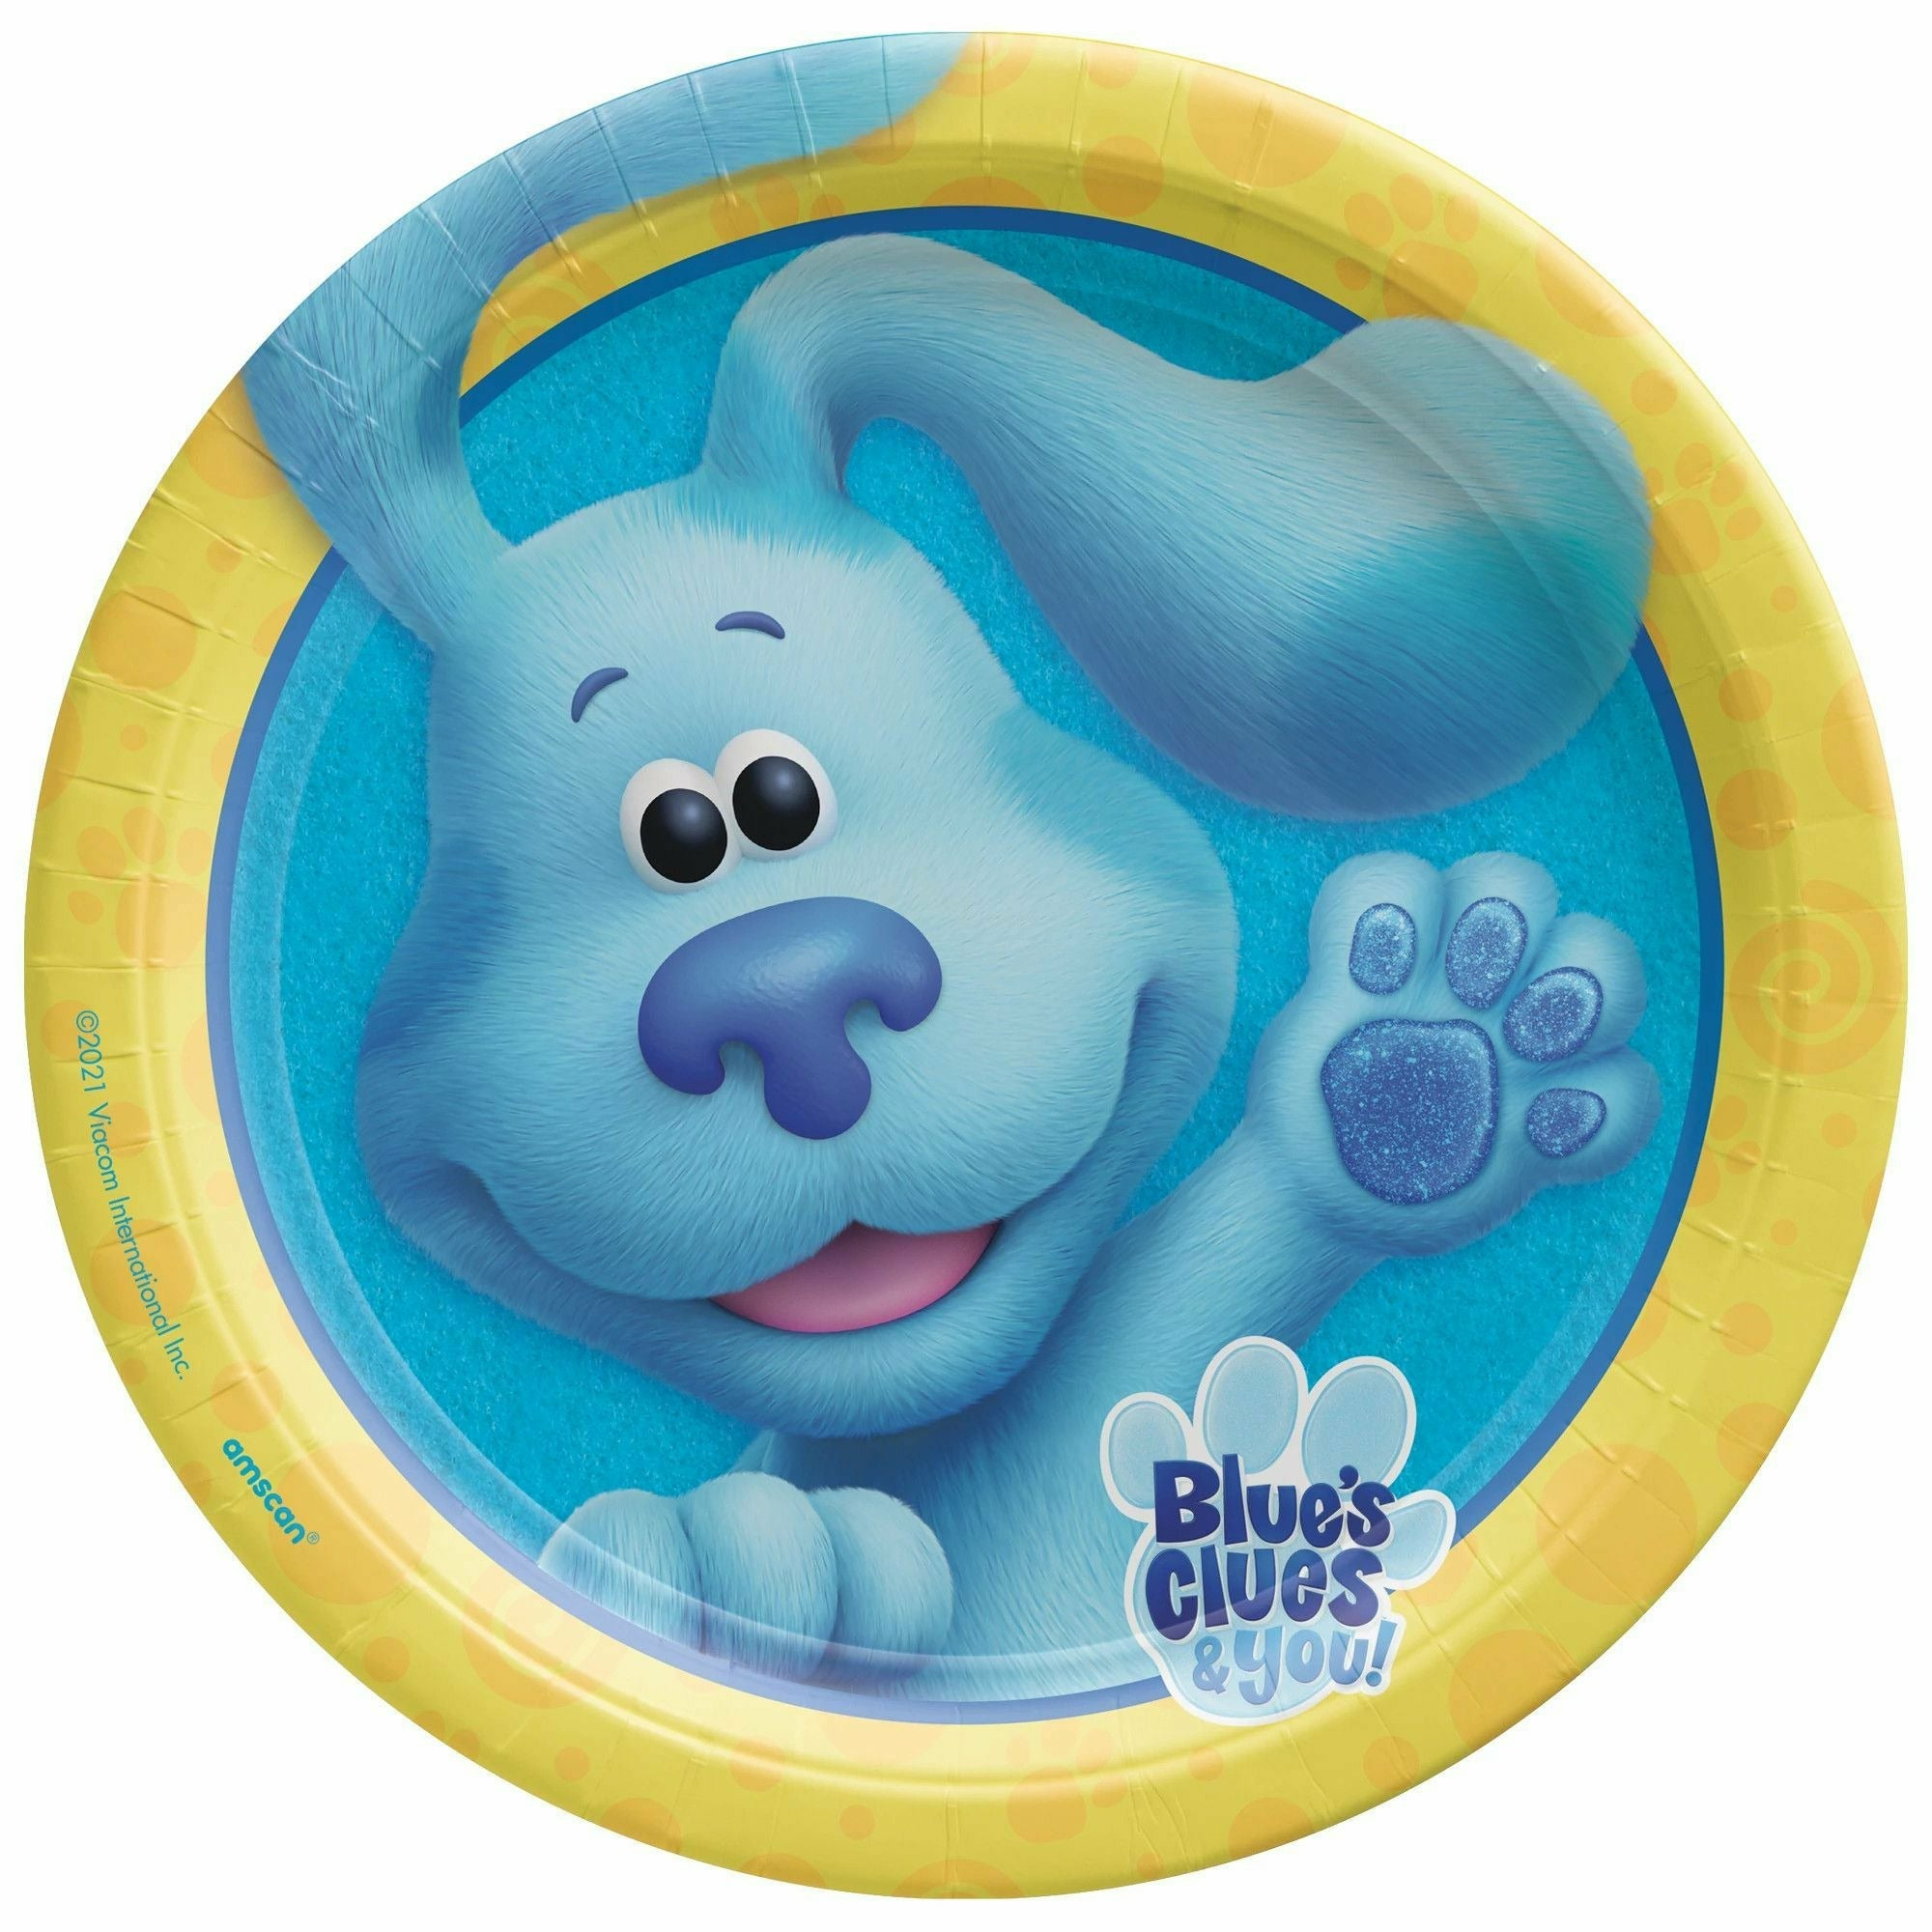 "Blues Clues 9"" Round Plates"